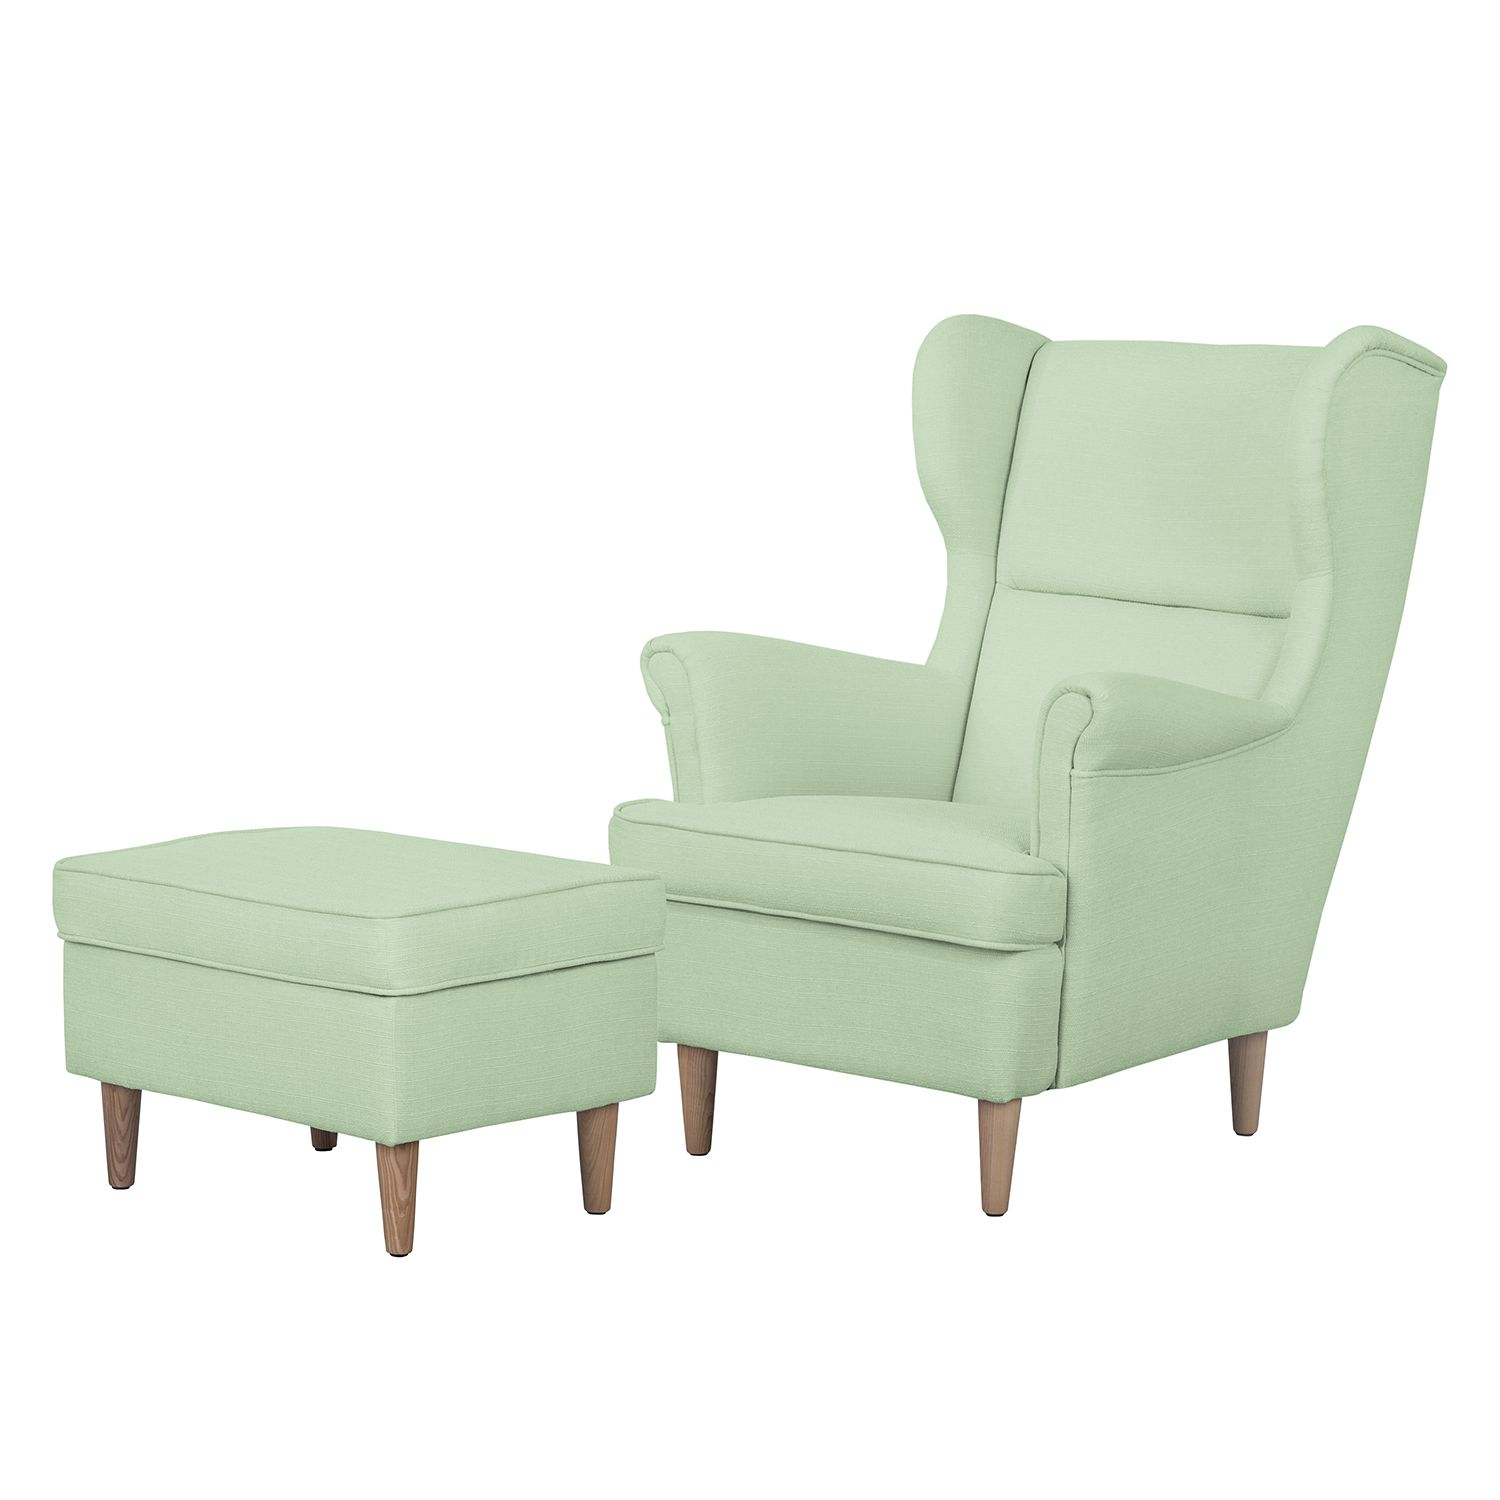 Ohrensessel Juna II - Webstoff - Mit Hocker - Mint, kollected by Johanna